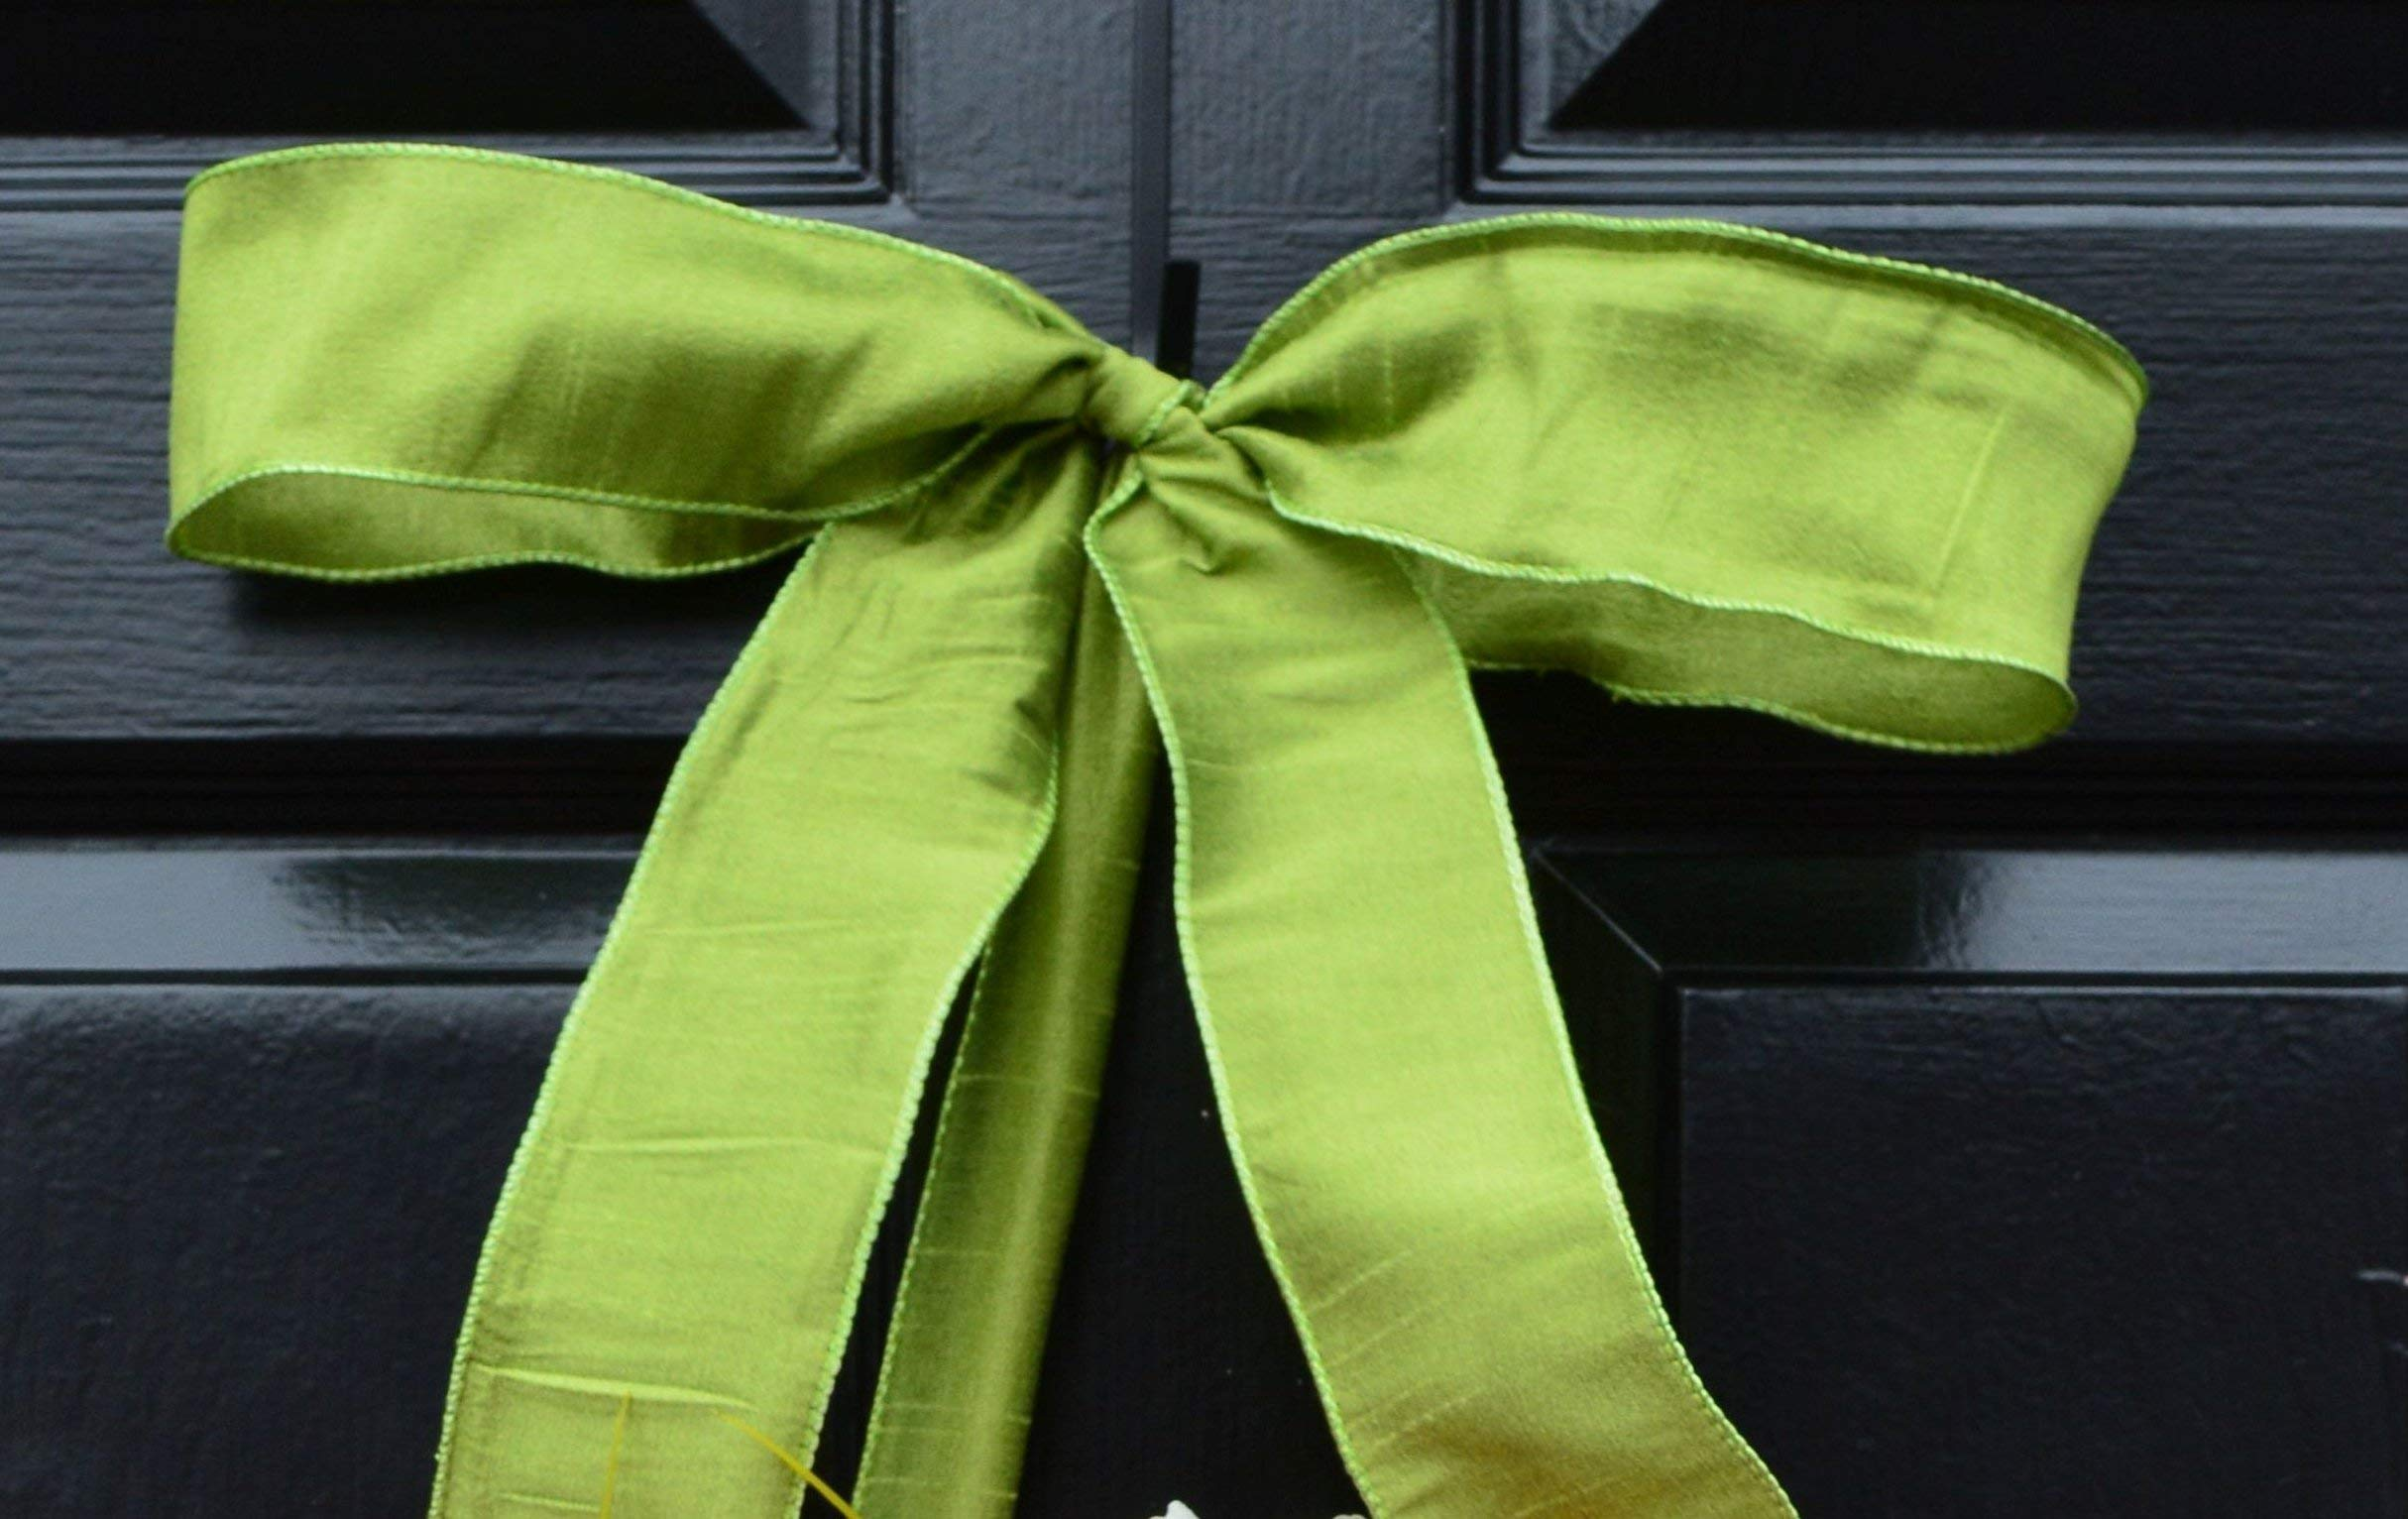 Elegant Holidays Handmade Cream, Green Berry Wreath with Monogram, Front Door Welcome Guests Outdoor Indoor Home Wall Accent Décor Great Spring, Easter, St Patricks Day, Christmas, All Seasons, 18-24 by Elegant Holidays Inc. (Image #6)